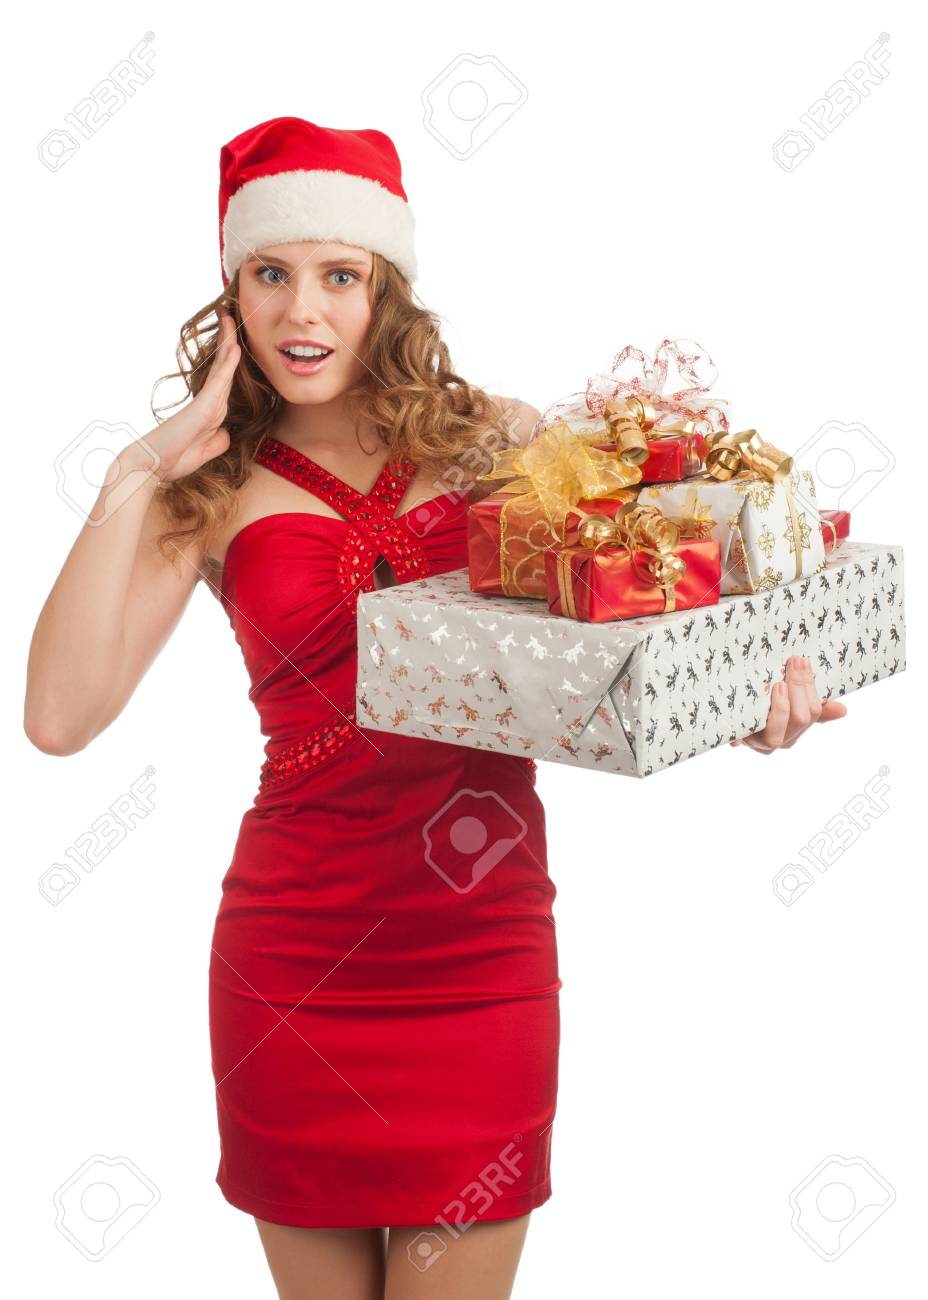 595be14bd2605 Excited Christmas shopping woman santa hat holding many Christmas gifts in her  hands Stock Photo -